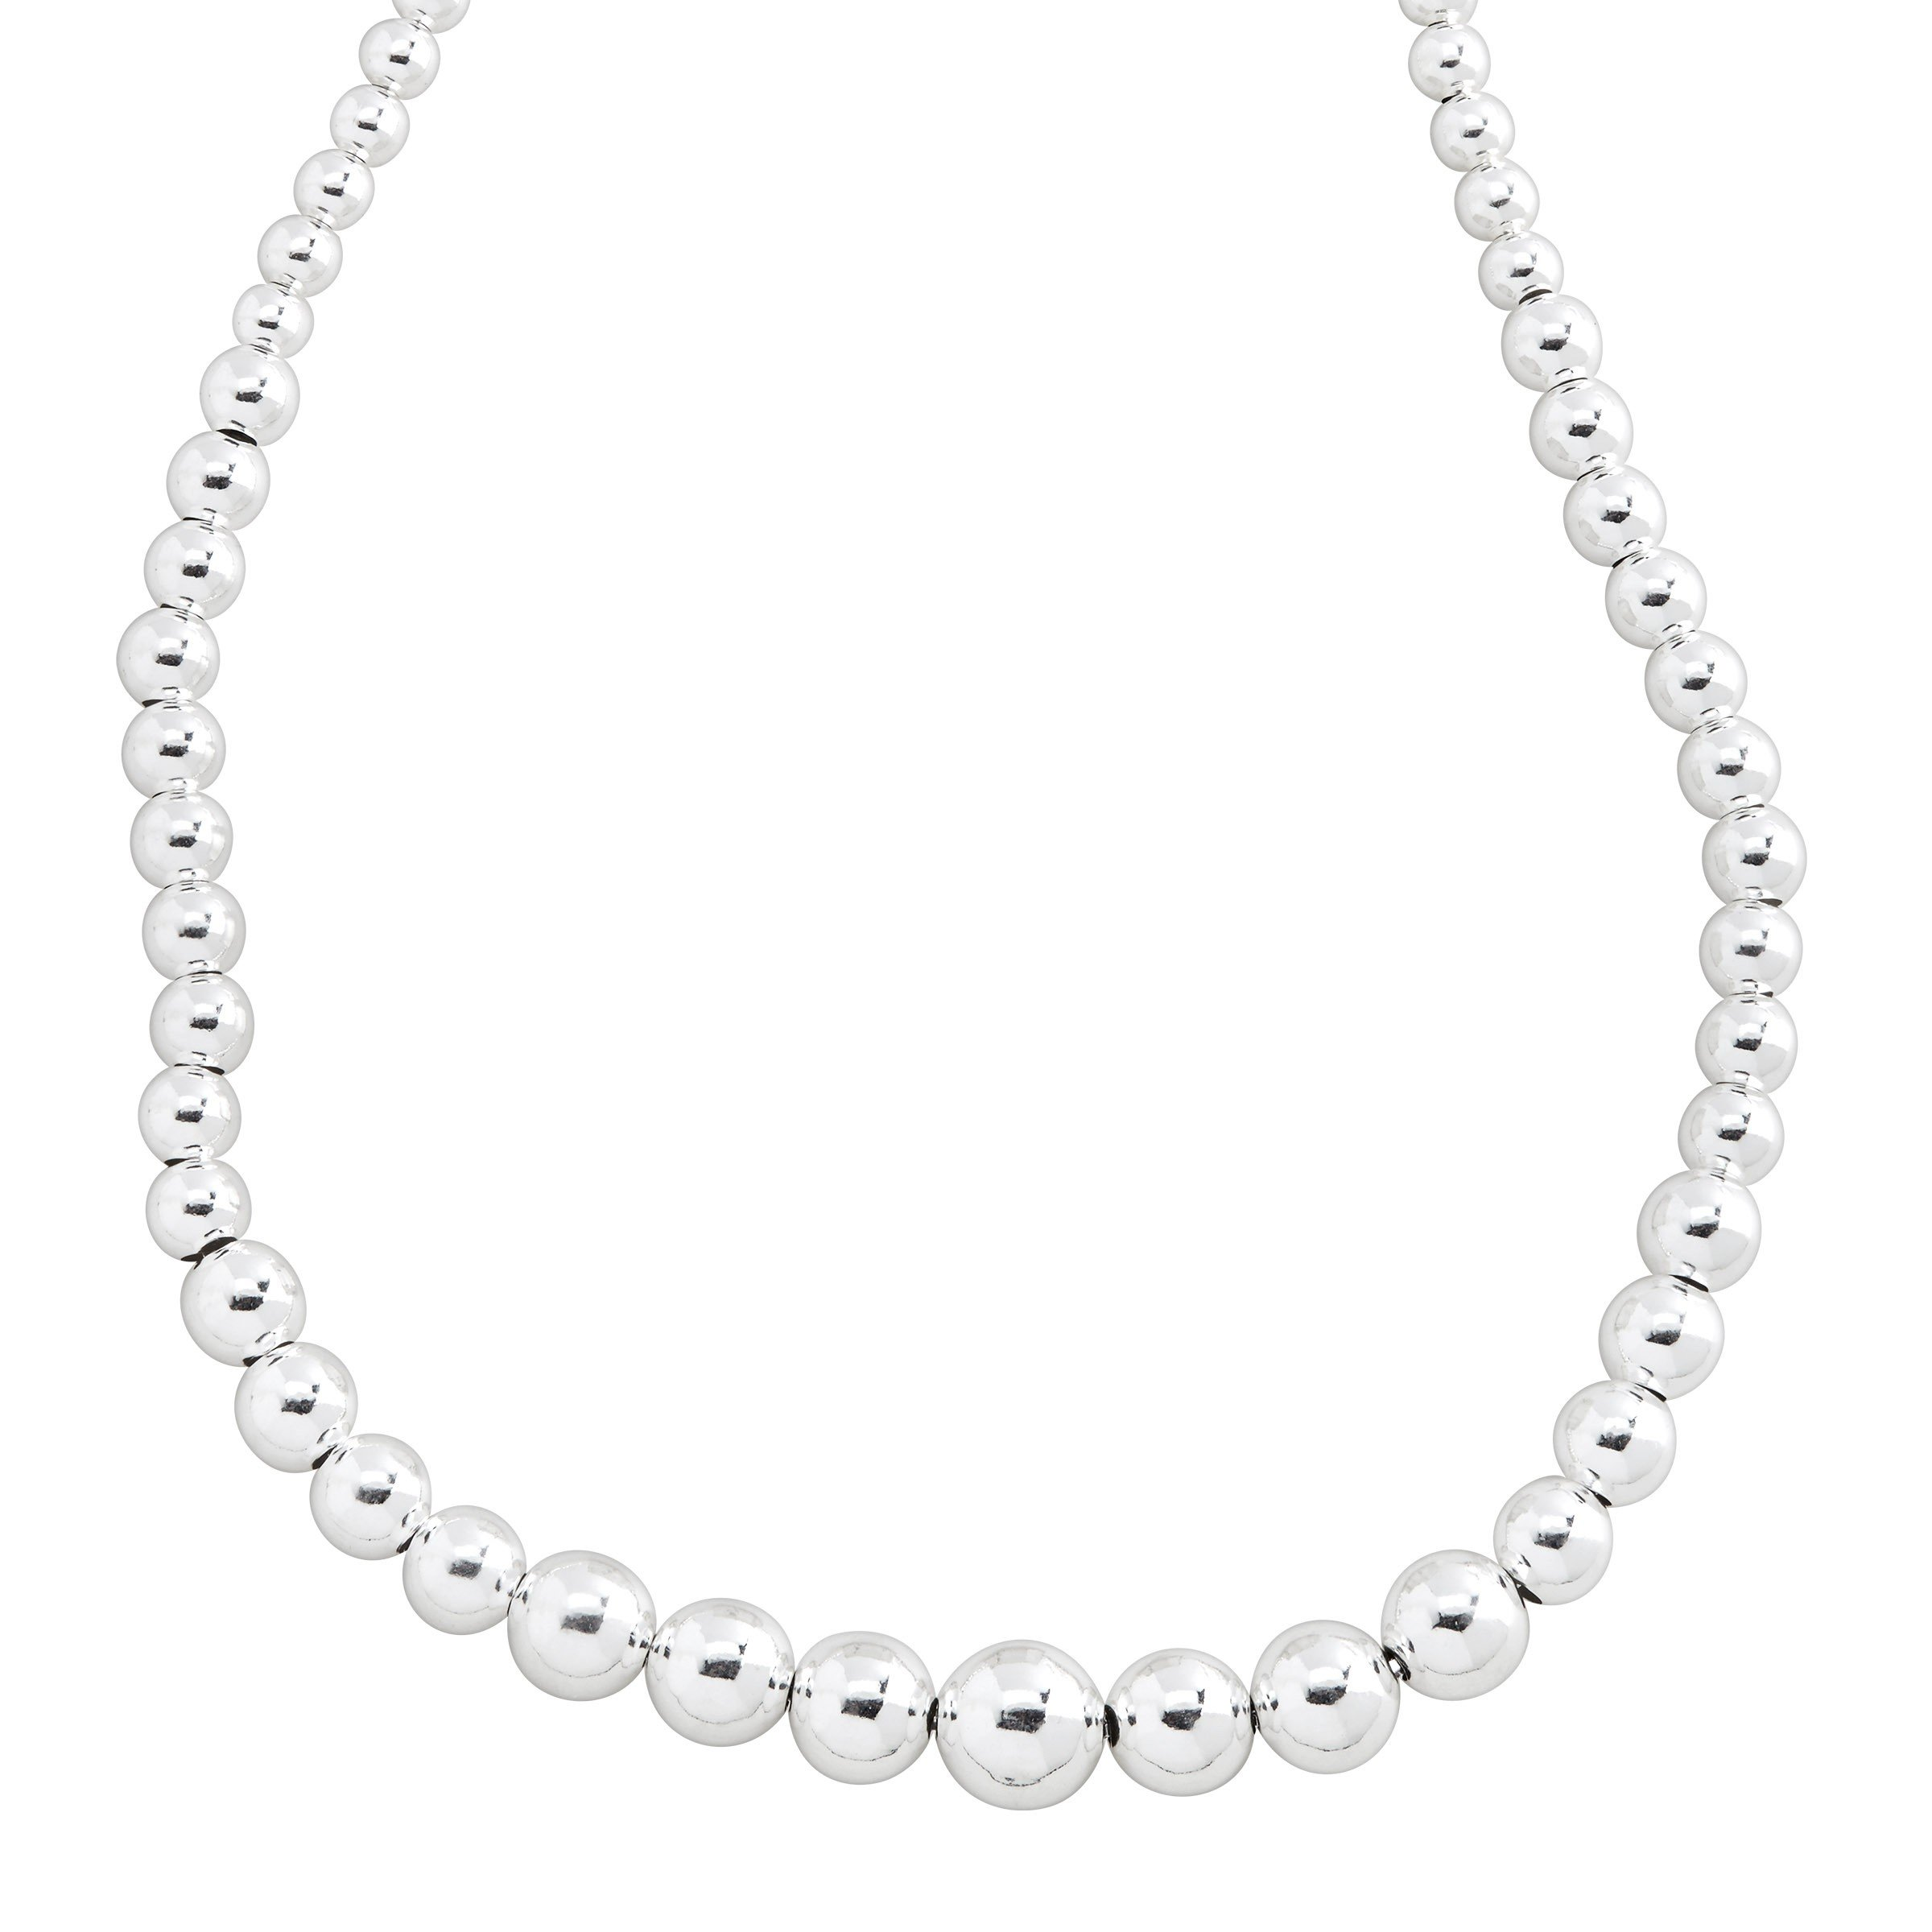 Silpada 'Blissful Baubles' Graduated Bead Necklace in Sterling Silver